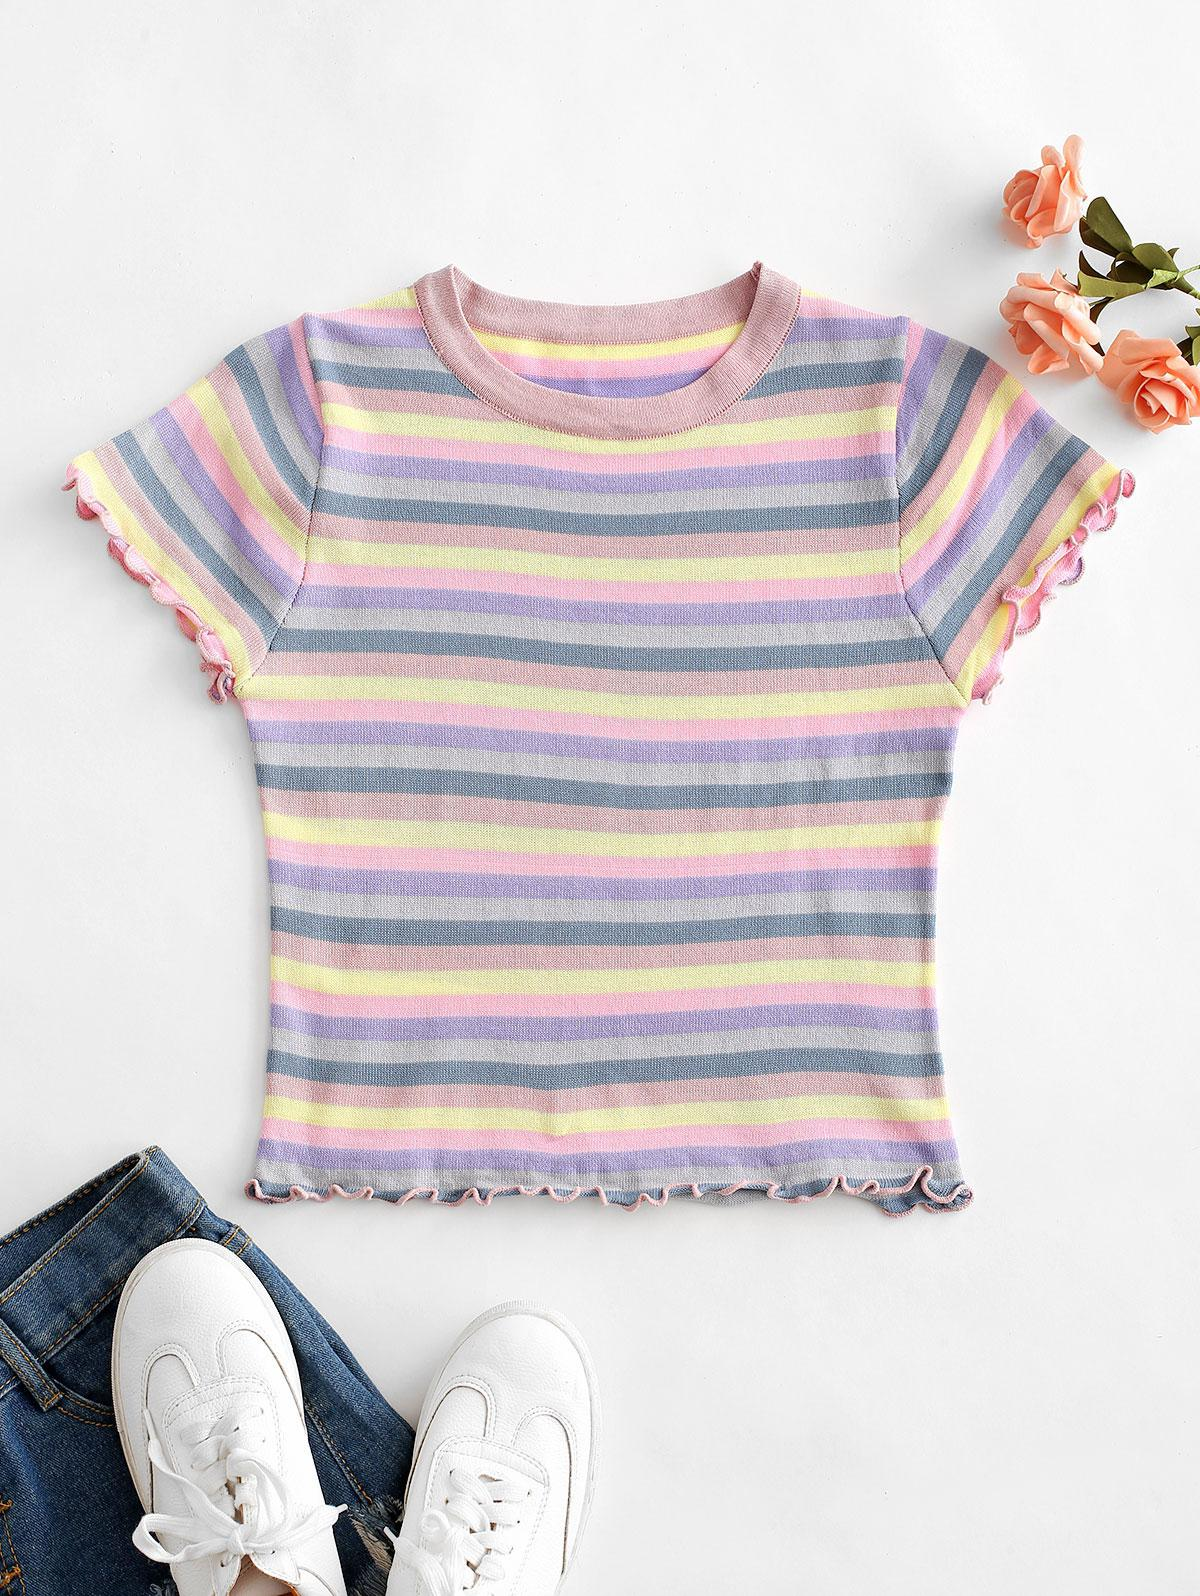 Lettuce Trim Colorful Striped T-shirt